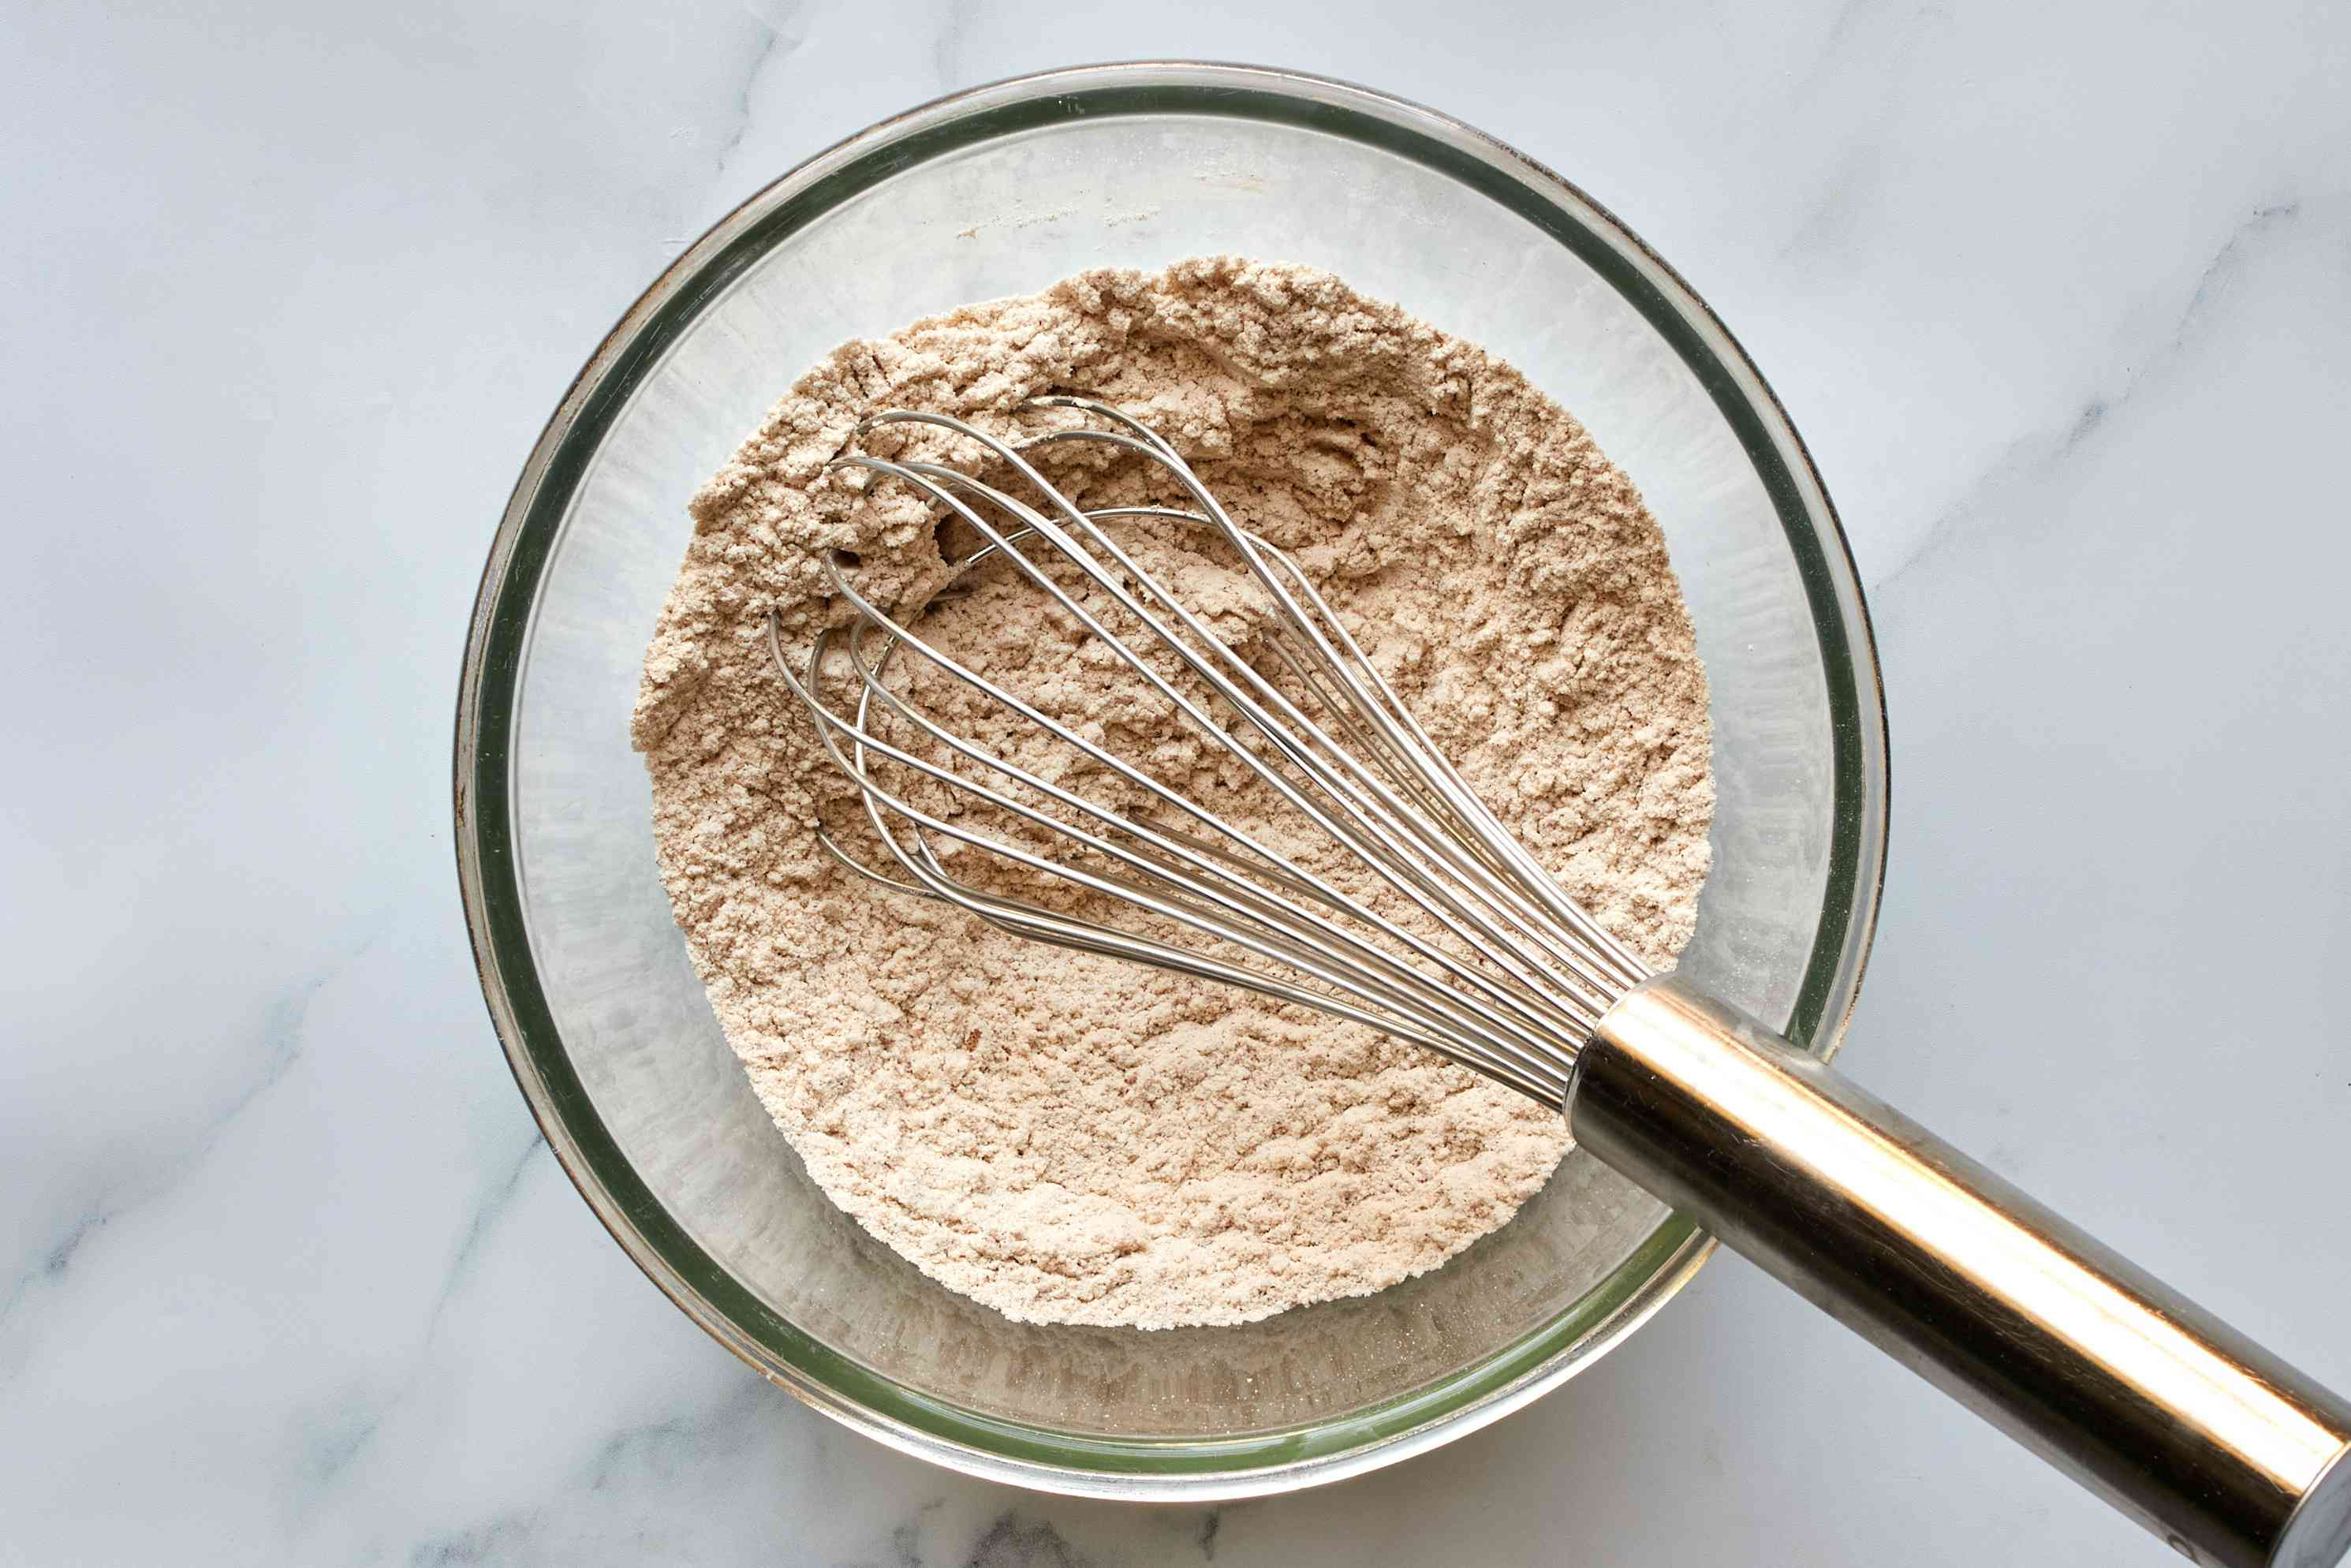 flour, baking powder, spices, and salt in a bowl